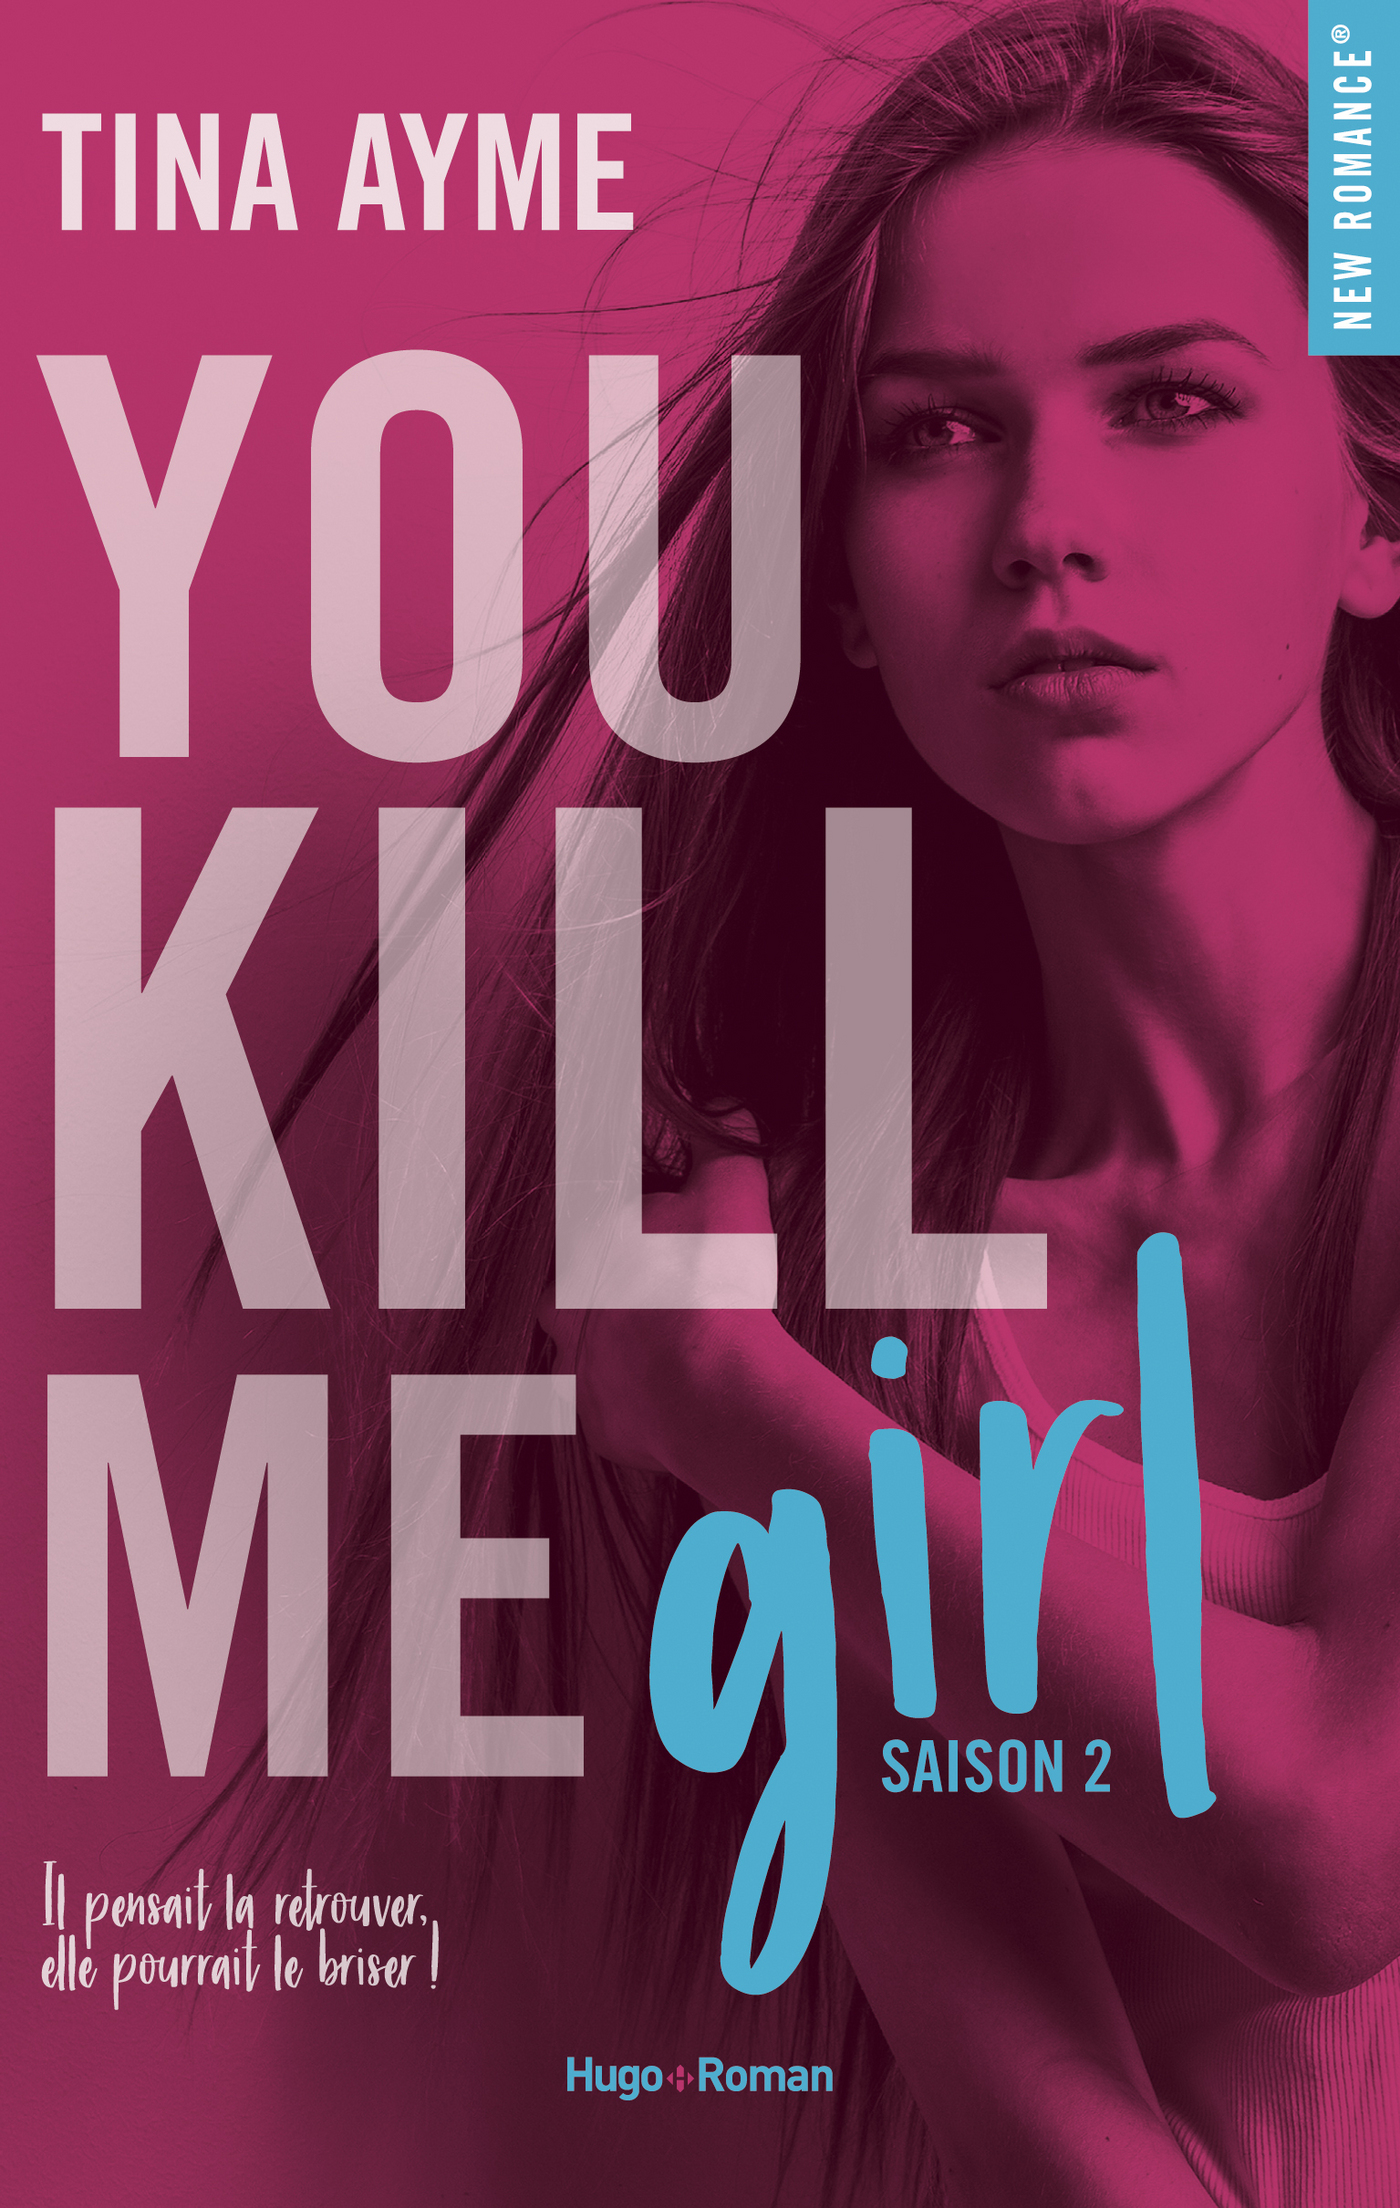 You kill me girl Saison 2 -Extrait offert-